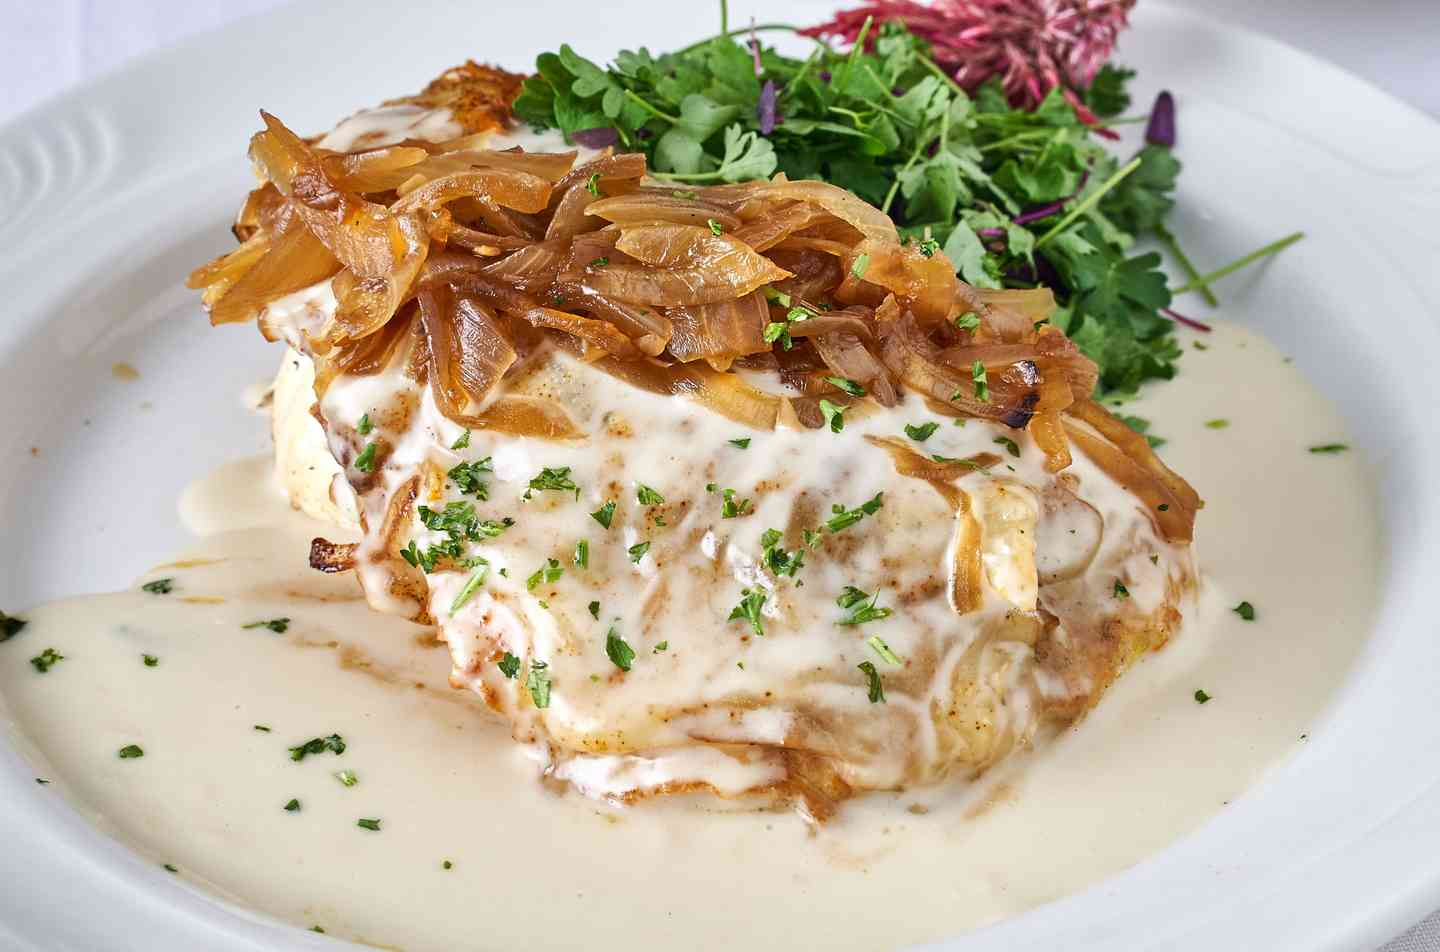 Pan Seared Chicken topped with Beurre Blanc Sauce